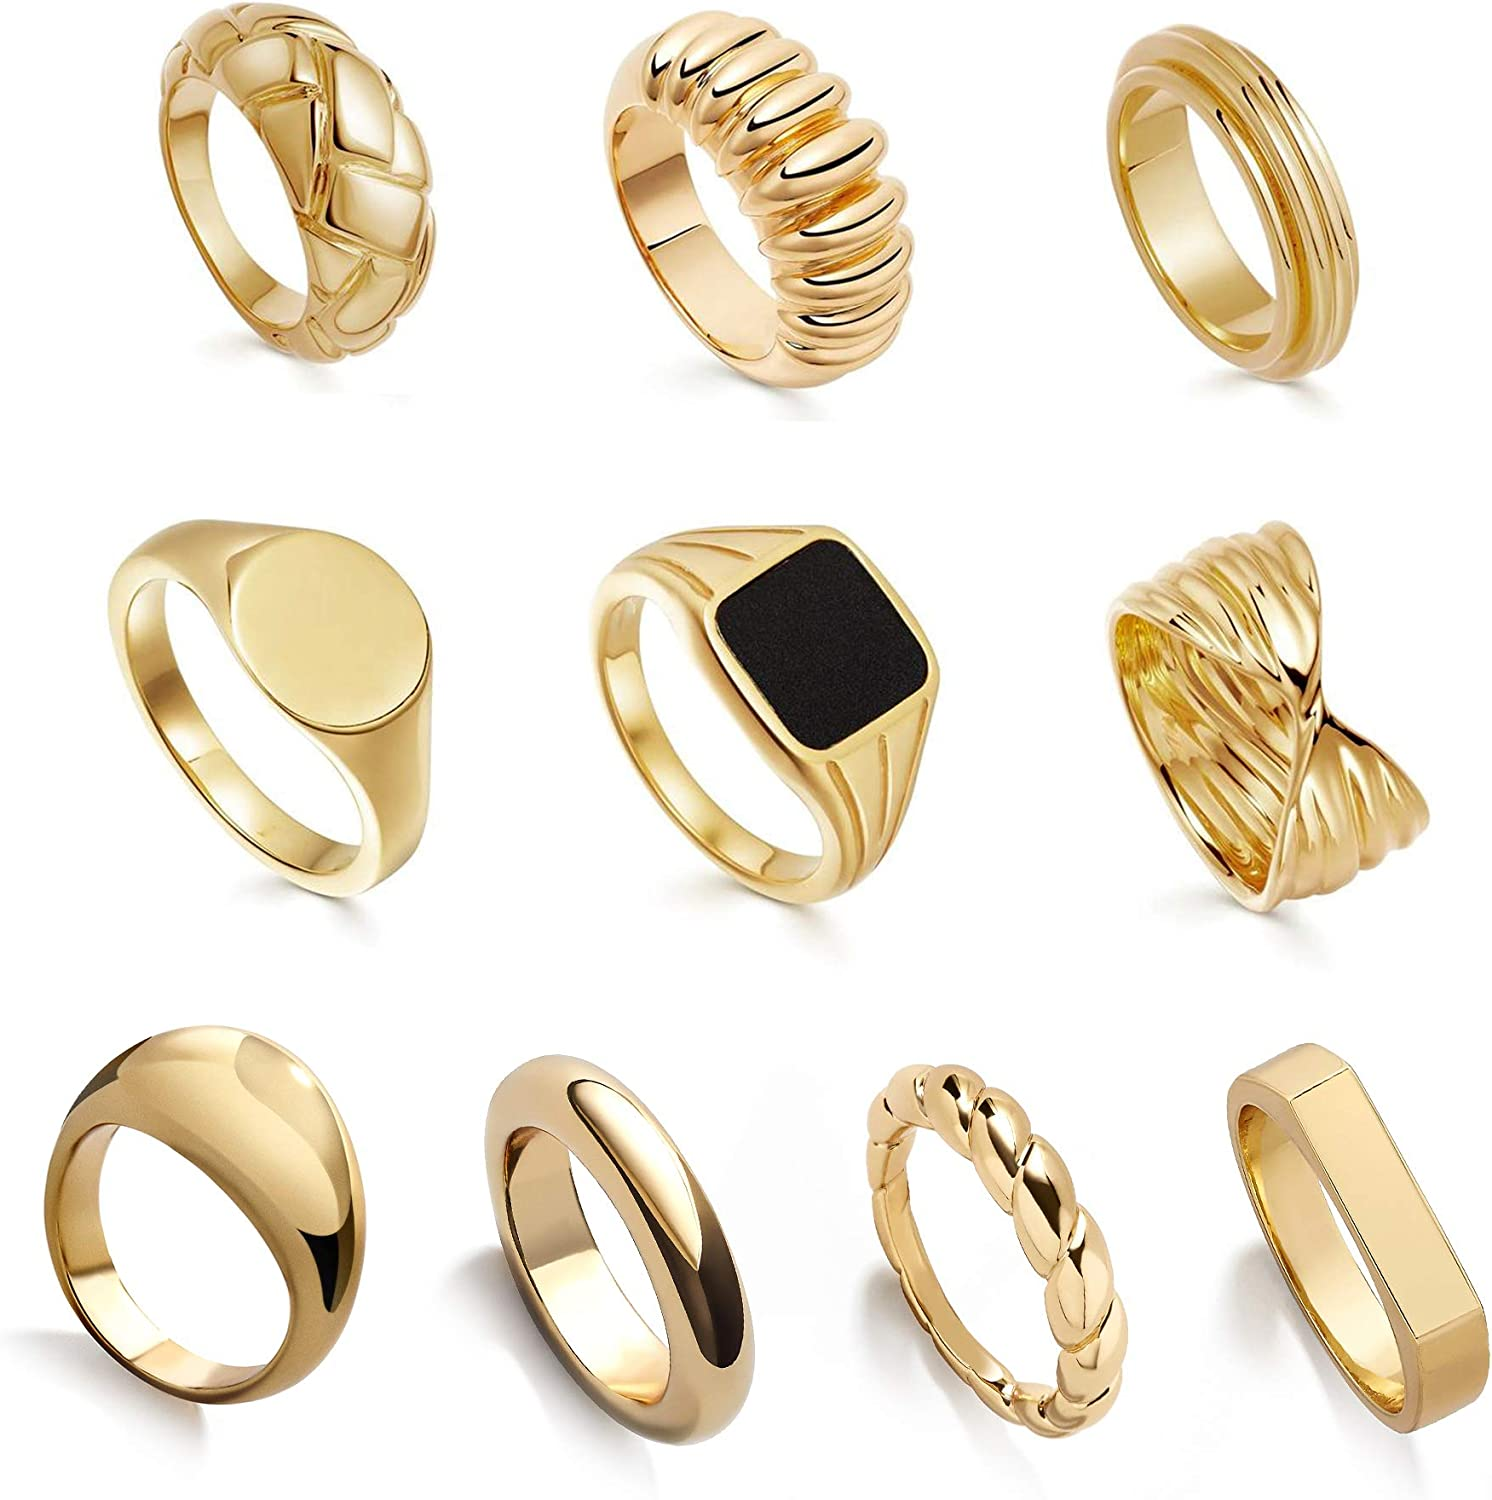 SLOONG 10pcs Y2K Style Chunky Dome Ring Set 14k Gold Plated Ring Croissant Braided Twisted Signet Ring Stacking Band Ring Trendy Signet Ring Statement Jewelry for Women Men